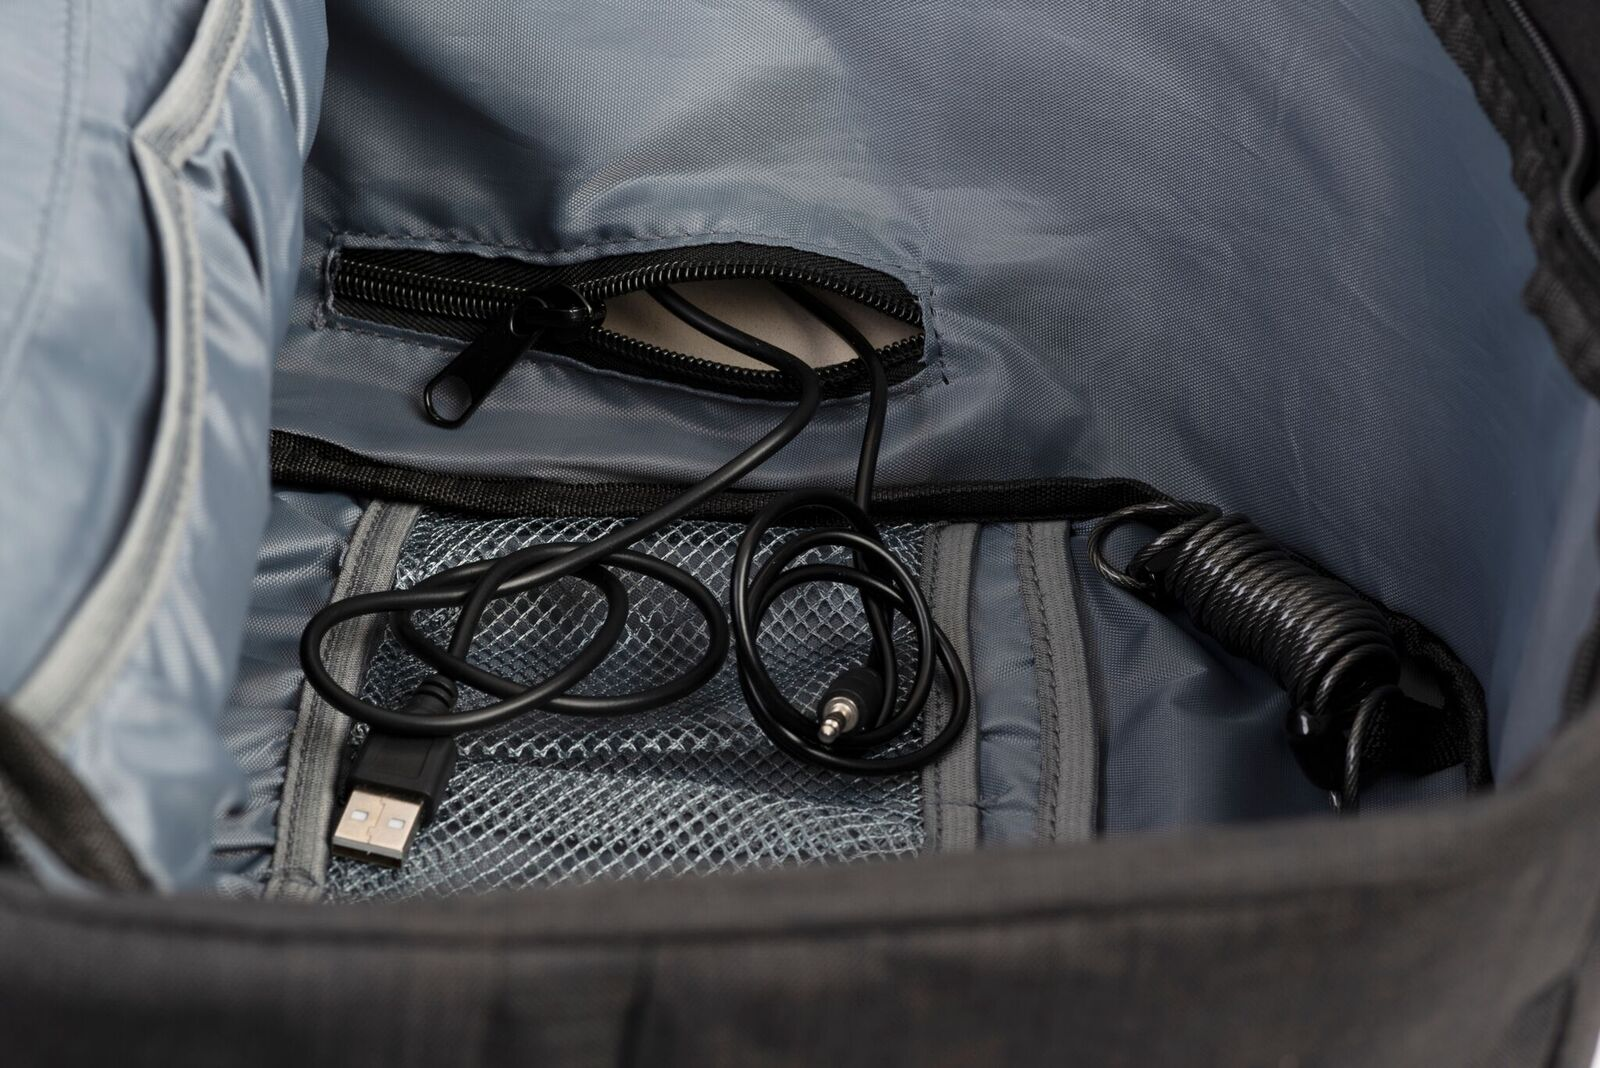 close view presentation photo of snug anti theft backpack usb function